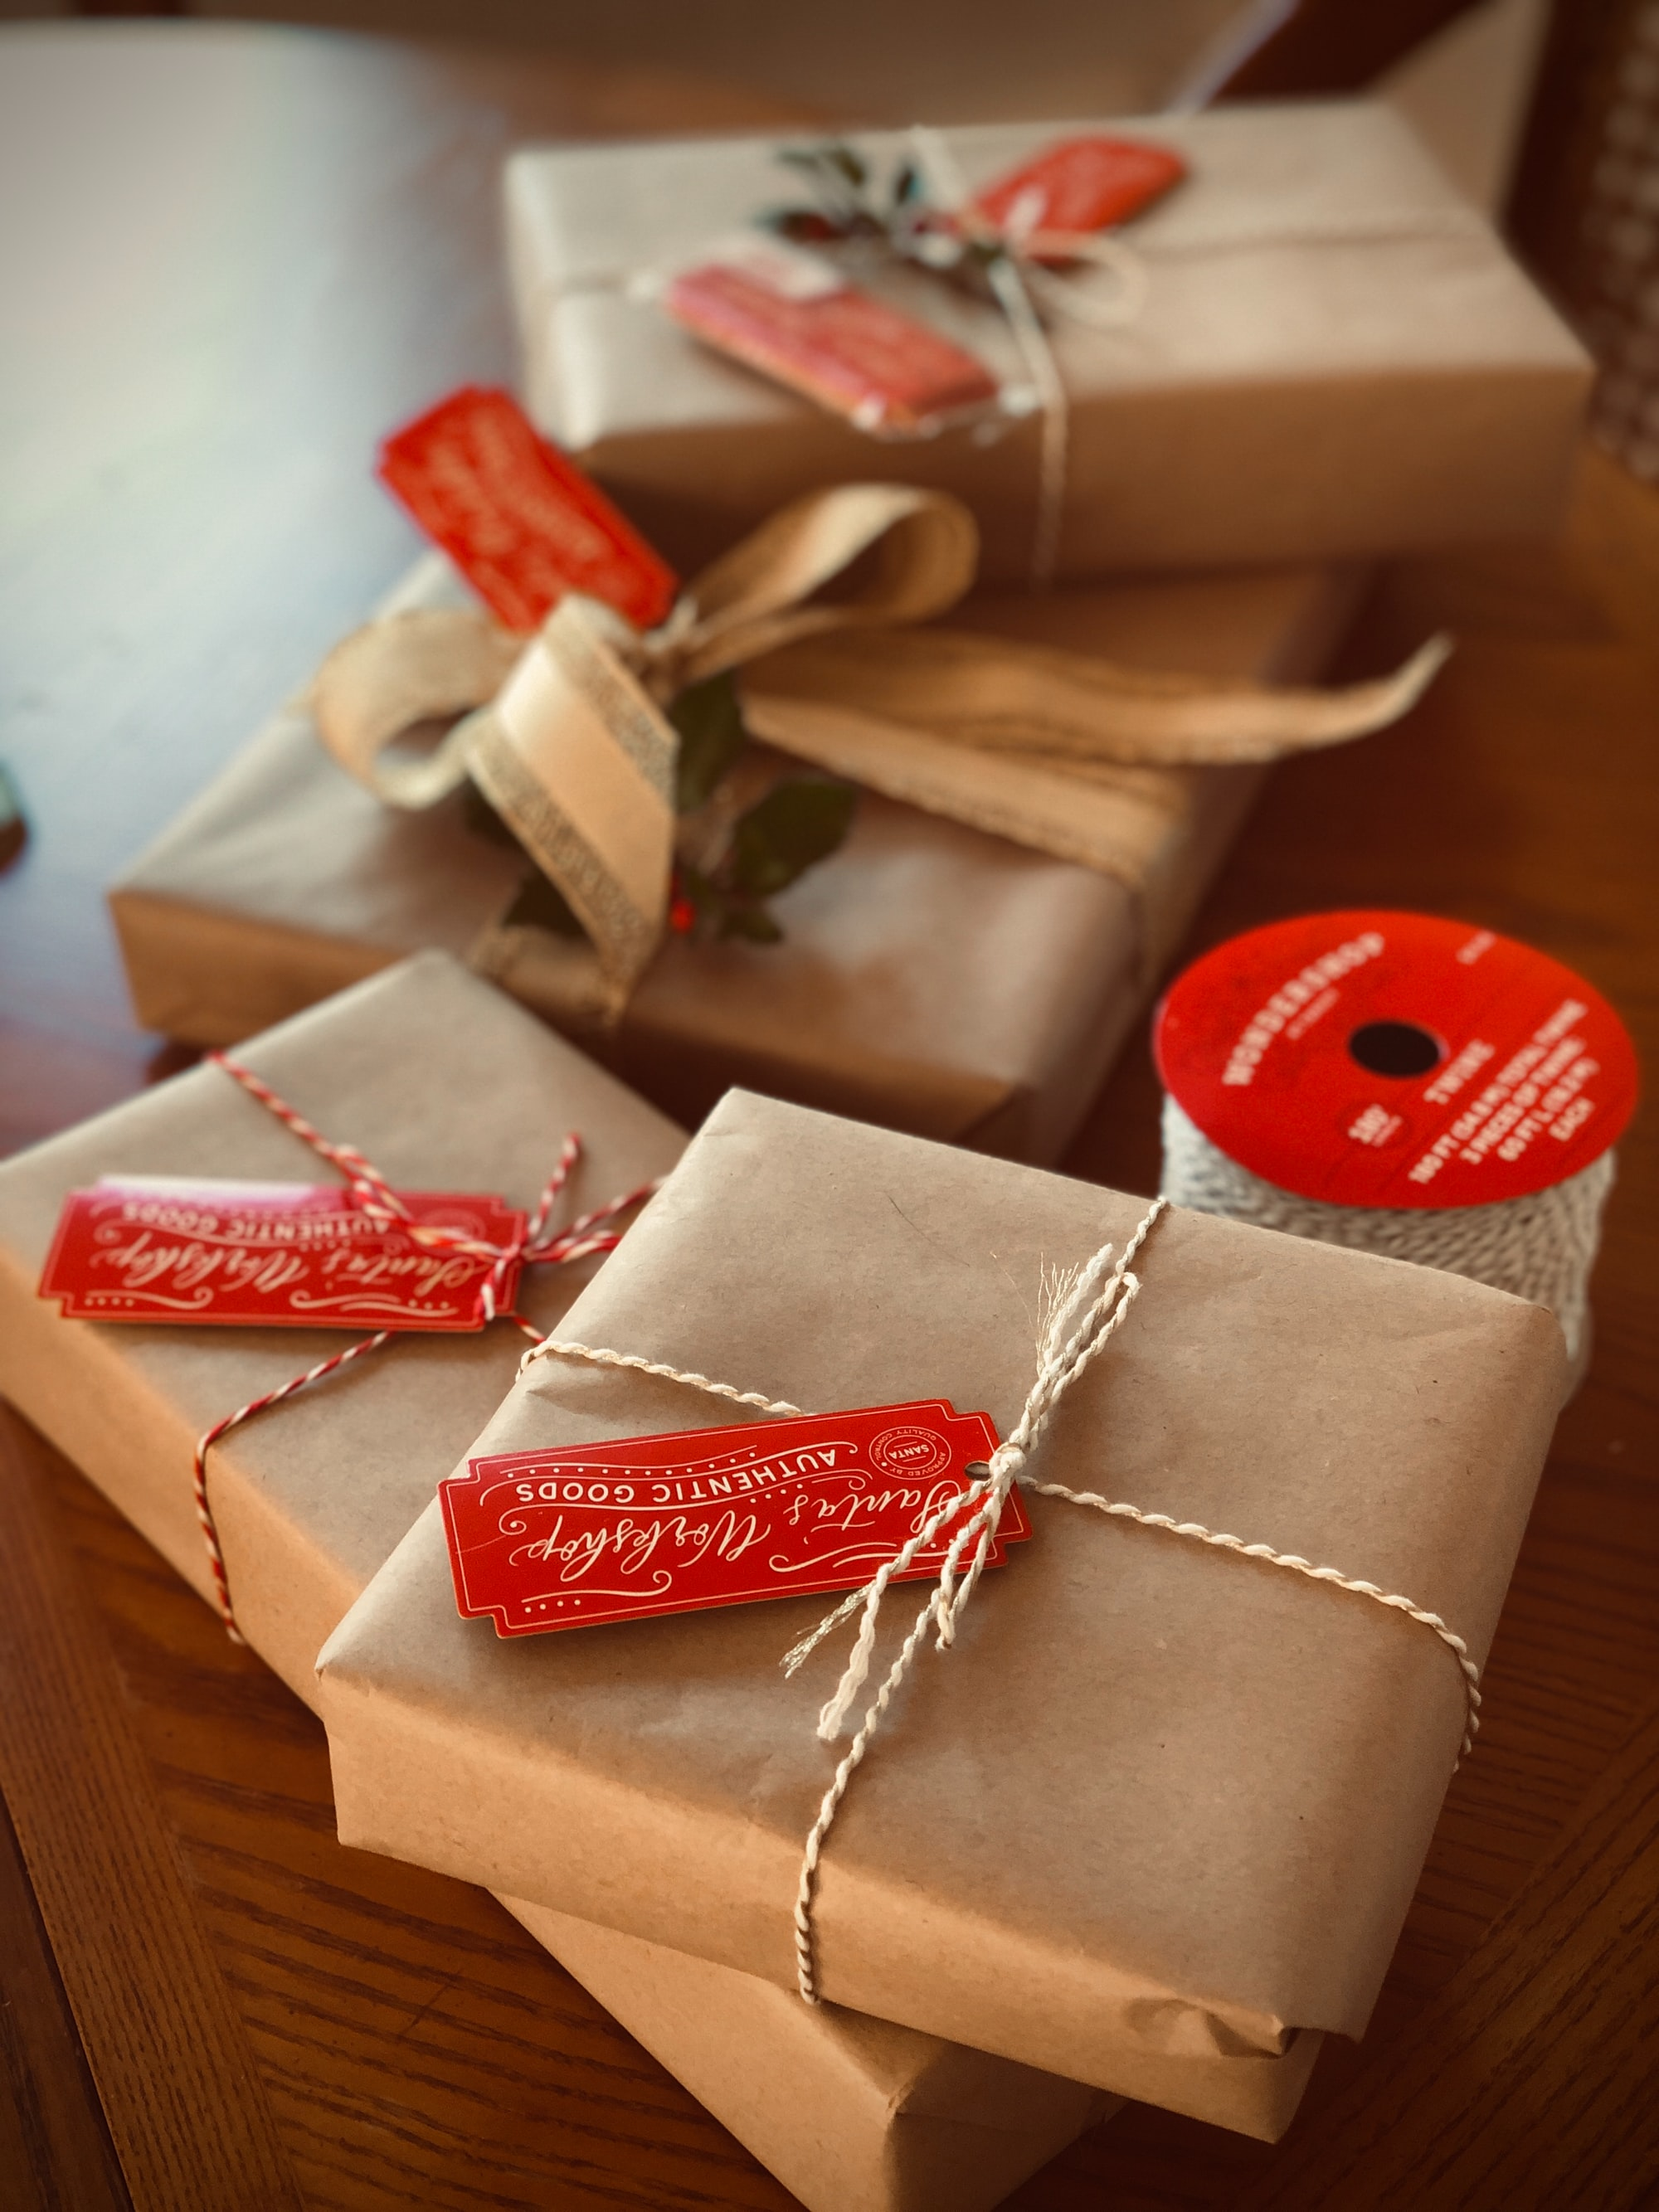 Christmas presents wrapped in plain brown paper with white and gold twine and cute Santa's Workshop gift tag attached. There are also some twigs of holly added to the presents for a little extra appeal!